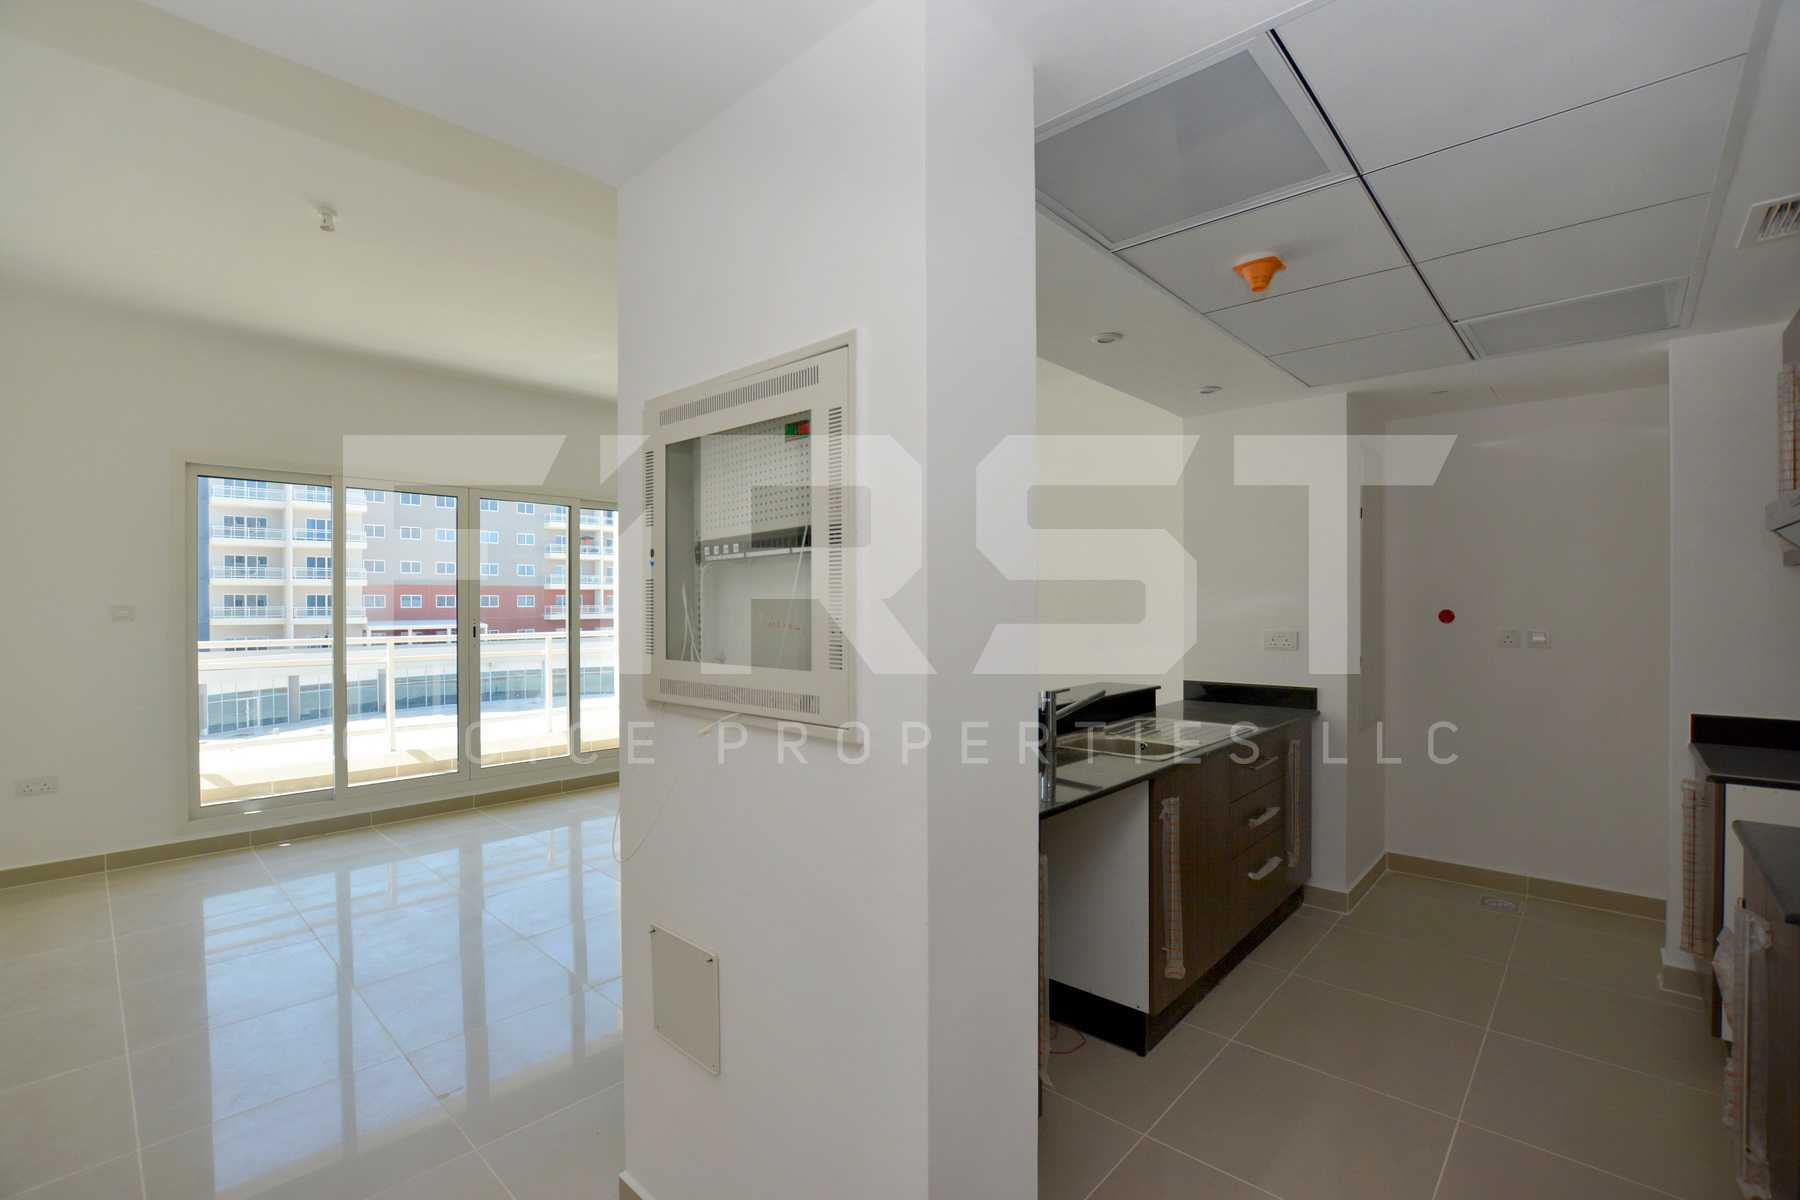 Internal Photo of 1 Bedroom Apartment Type A in Al Reef Downtown Al Reef Abu Dhabi UAE 74 sq.m 796 sq.ft (18).jpg